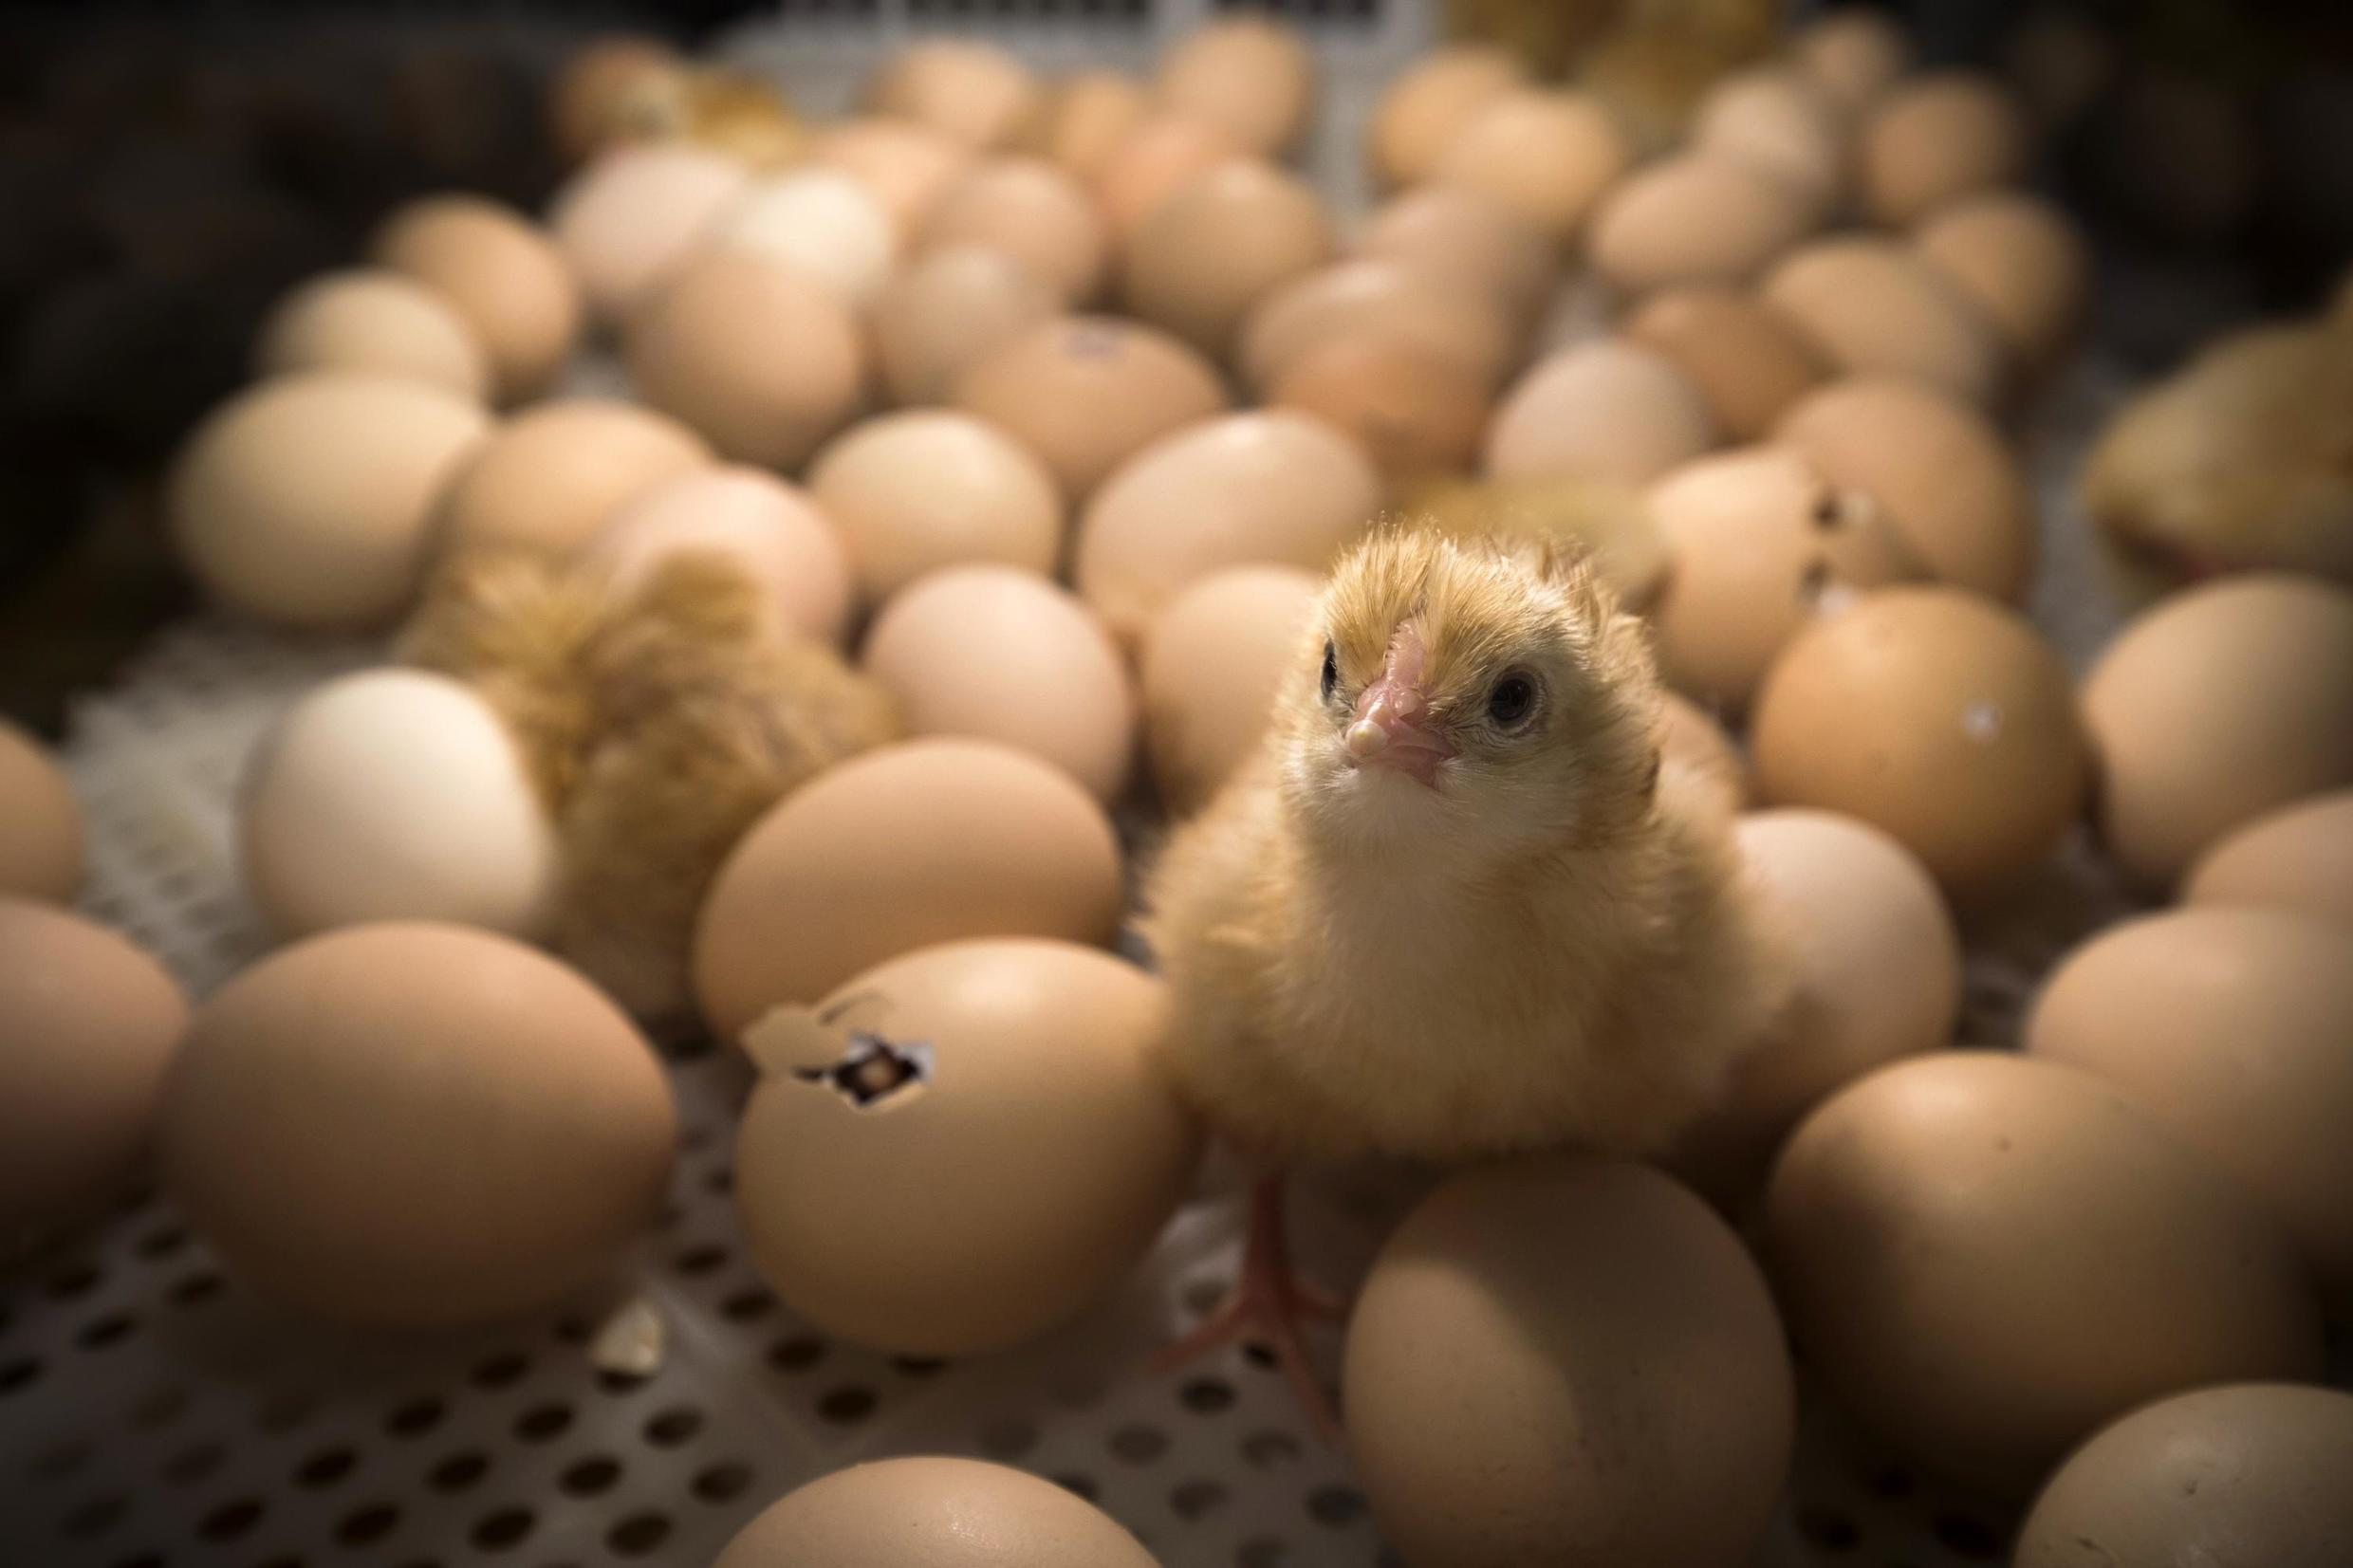 By the end of 2021, France will ban the controversial but widespread egg and poultry industry practice of systematically slaughtering male chicks, Agriculture Minister Didier Guillaume said on 28 January 2020.